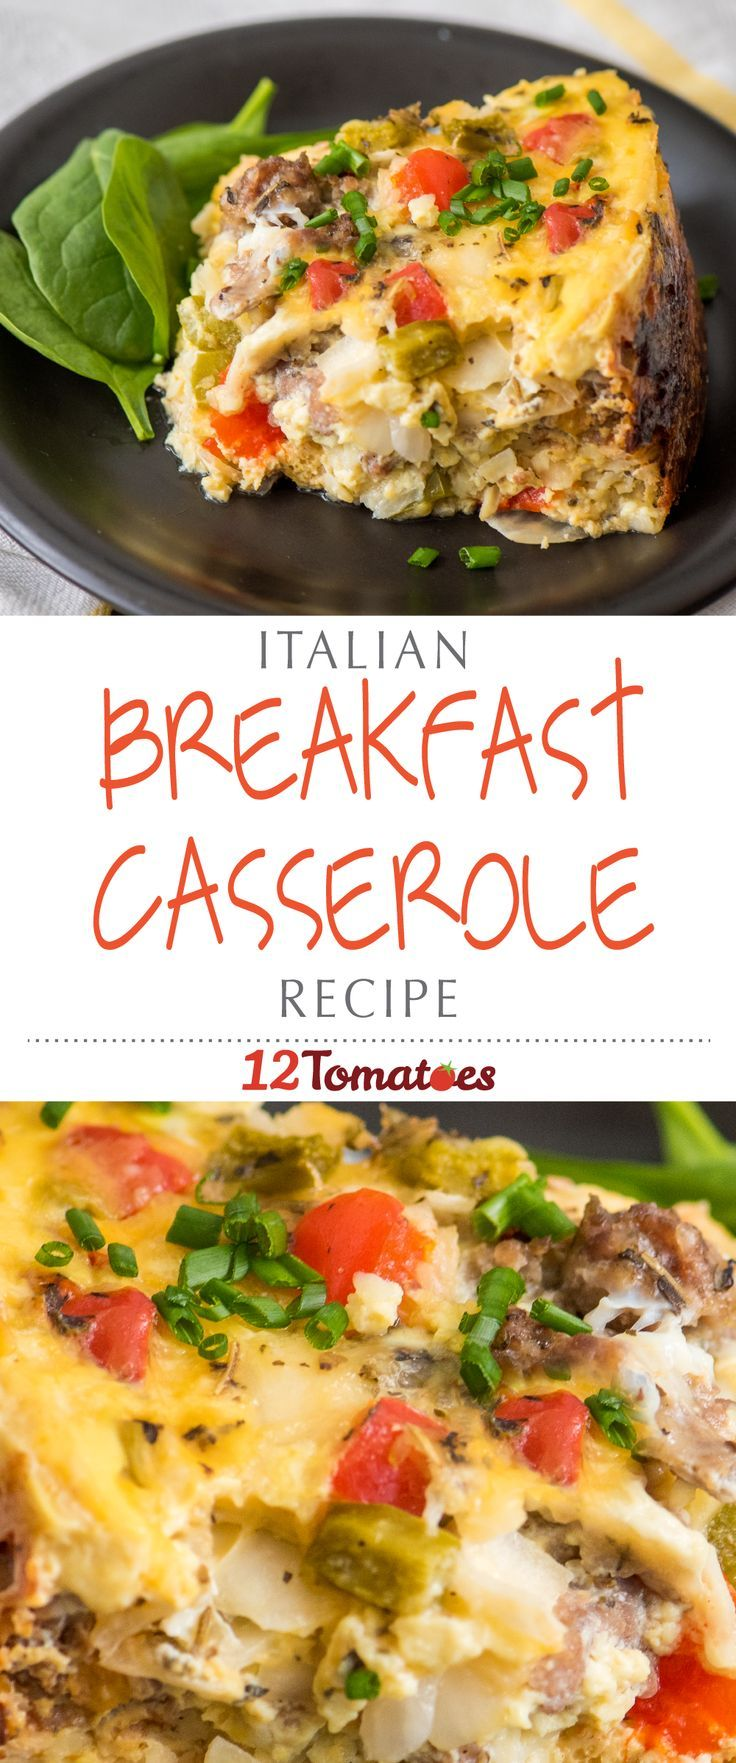 Slow Cooker Italian Breakfast Casserole | Packed with morning staples like hash browns, eggs, sausage, and cheese, our whole family loves this dish on the weekend.